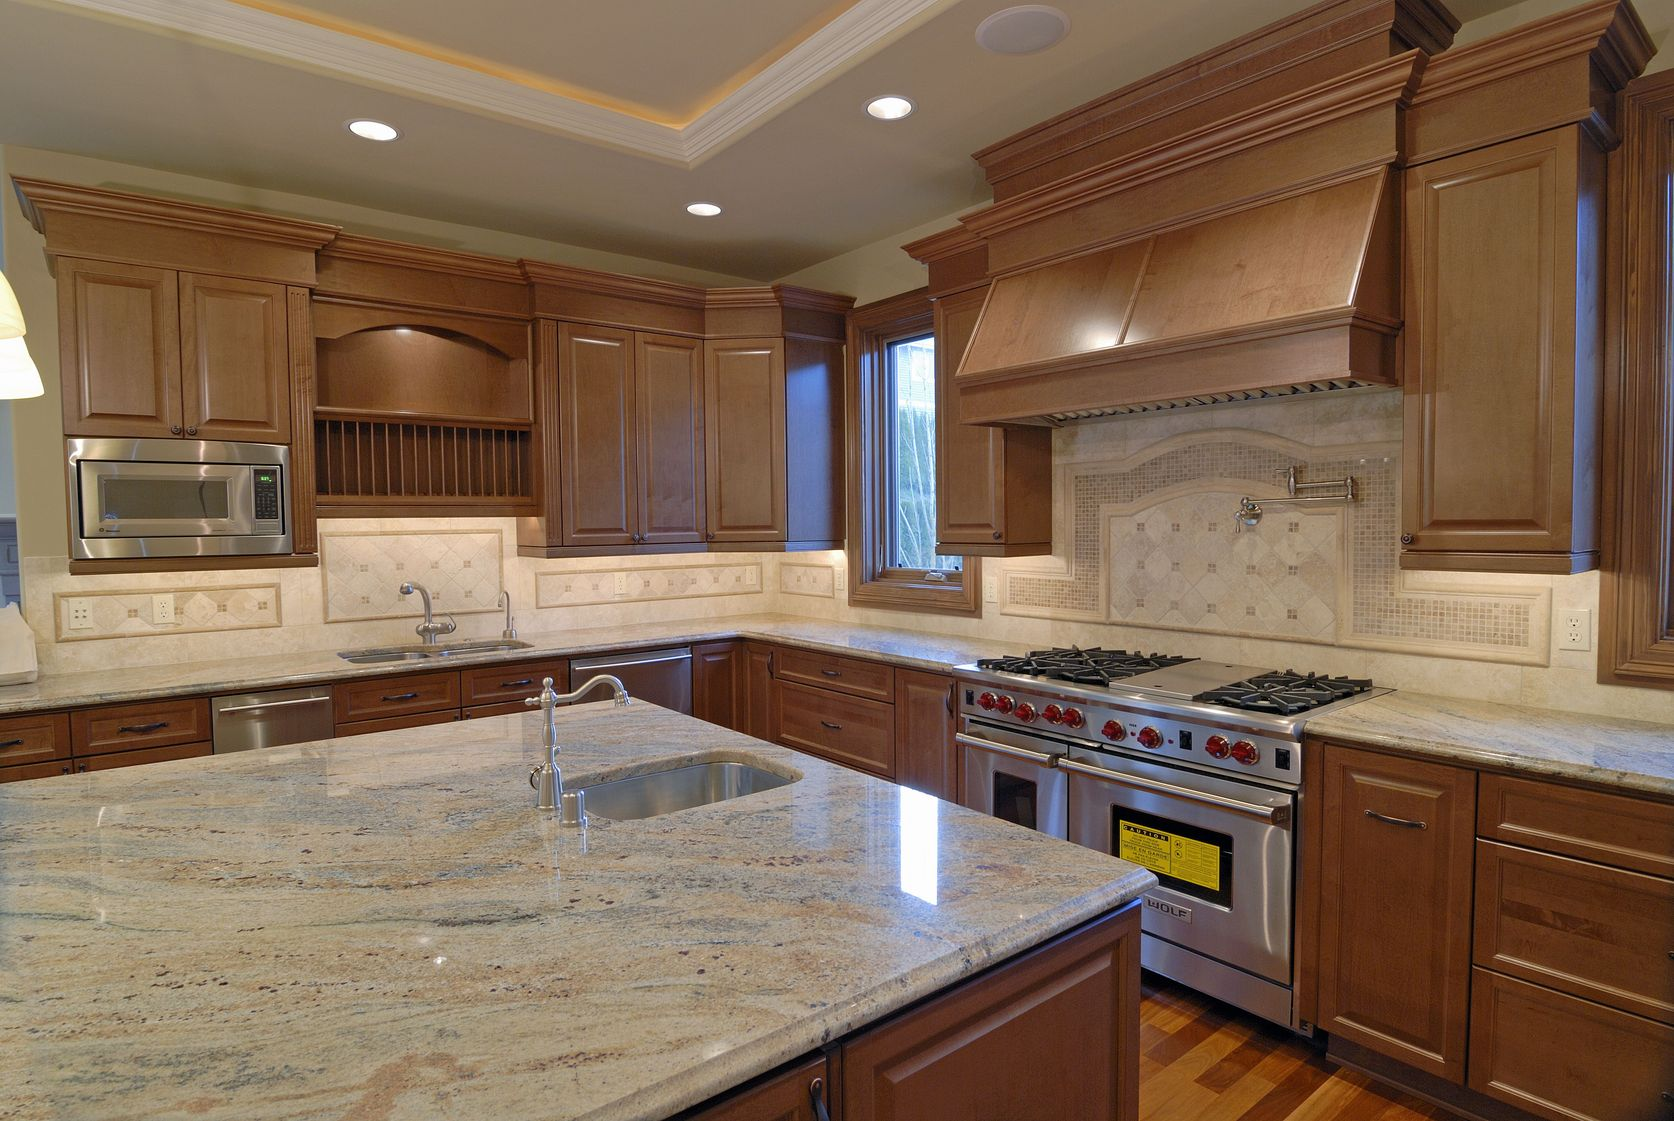 Kitchen remodeling tips how to design a kitchen with for Kitchen and remodeling